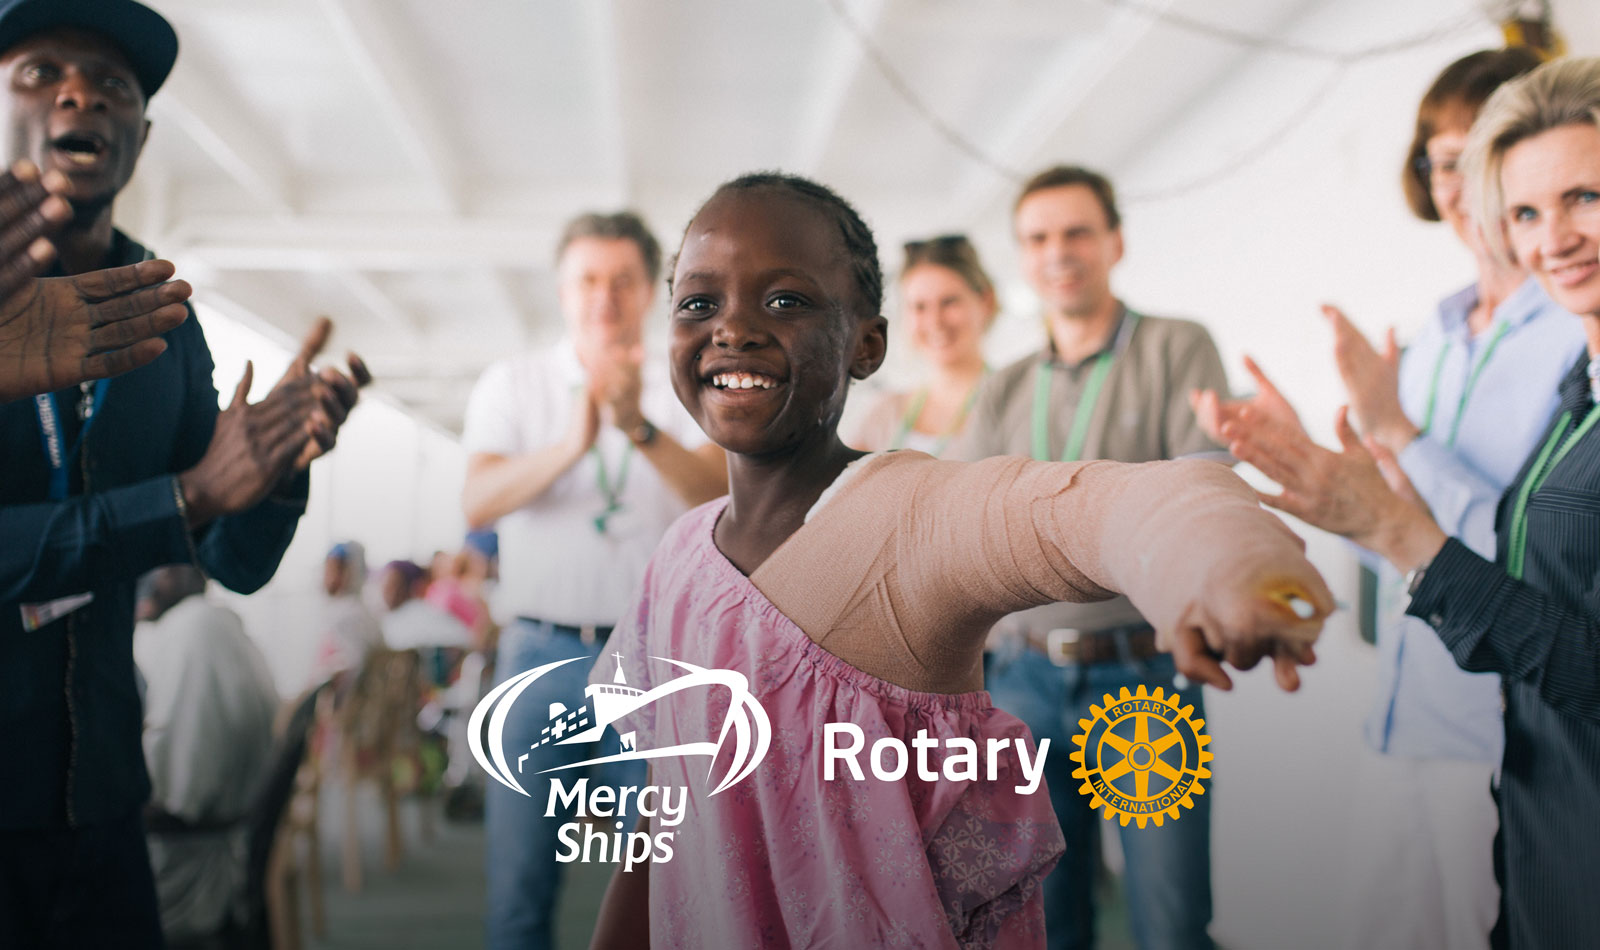 Celebrating the Rotary Grant